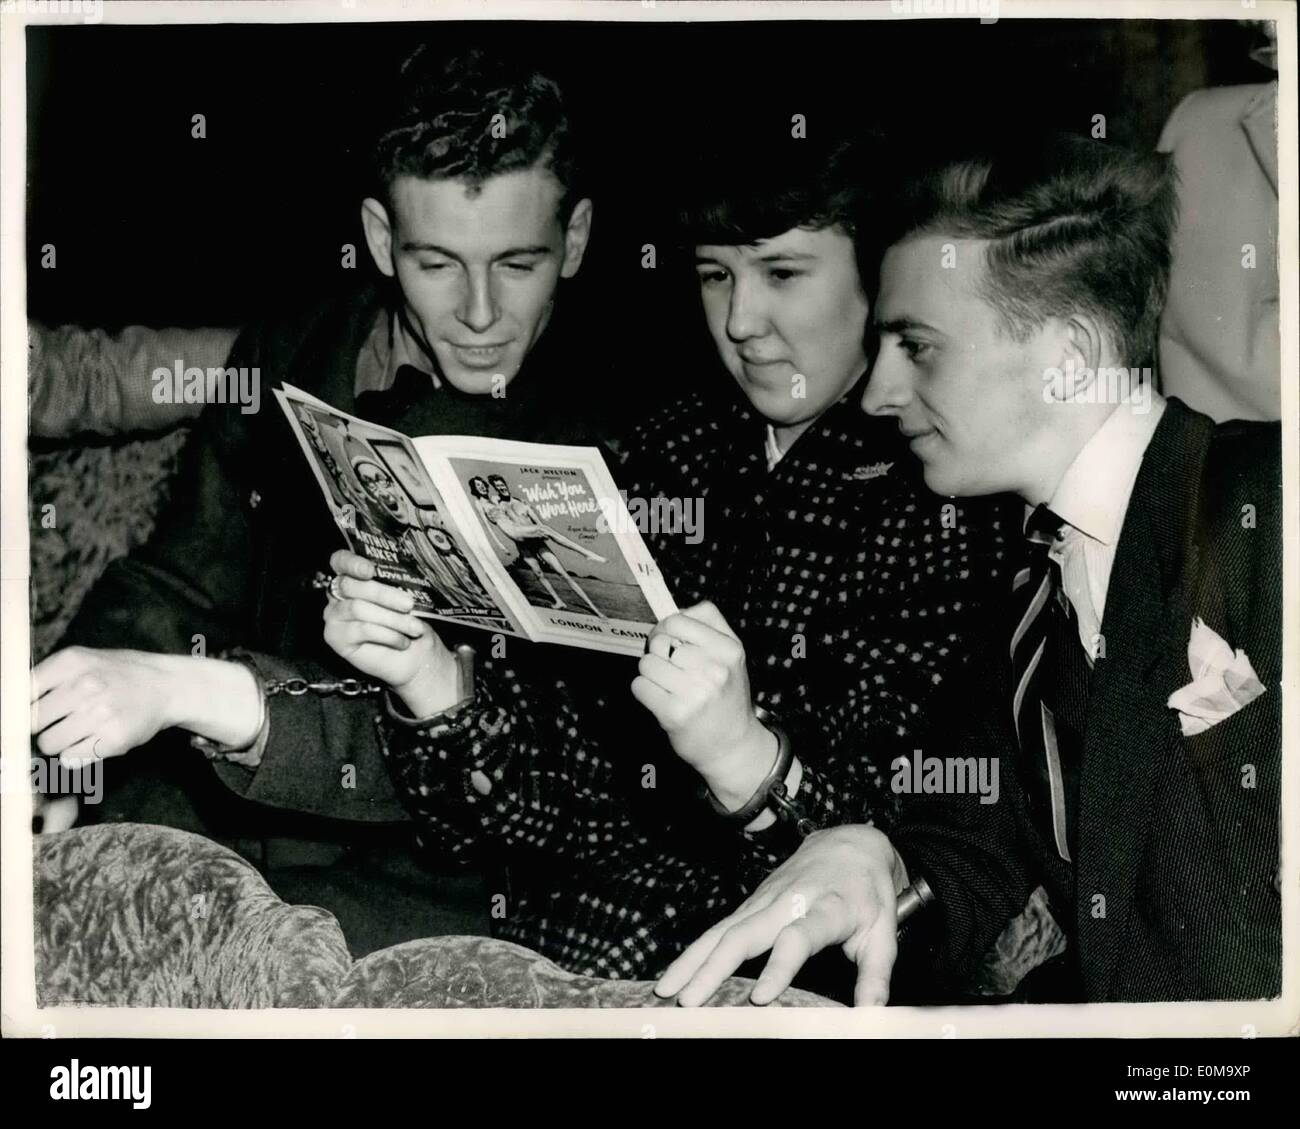 Apr. 20, 1954 - 20-4-54 The girl who must be handcuffed to her two boyfriends for a week. To enable Jill Johnson, of Eltham to win a prize in the Radio Luxemburg programme People are Funny she must decide in one week which of her two boyfriends, 20-year-old John Bingley and 20-year-old Eric Ward, both from Muswell Hill, and at present home on leave from the R.A.F. she will settle down with. To help her decide she must go around with both of them each evening handcuffed to her, and from this unpleasant experience she must choose the one she thinks is most likely to make the best husband - Stock Image